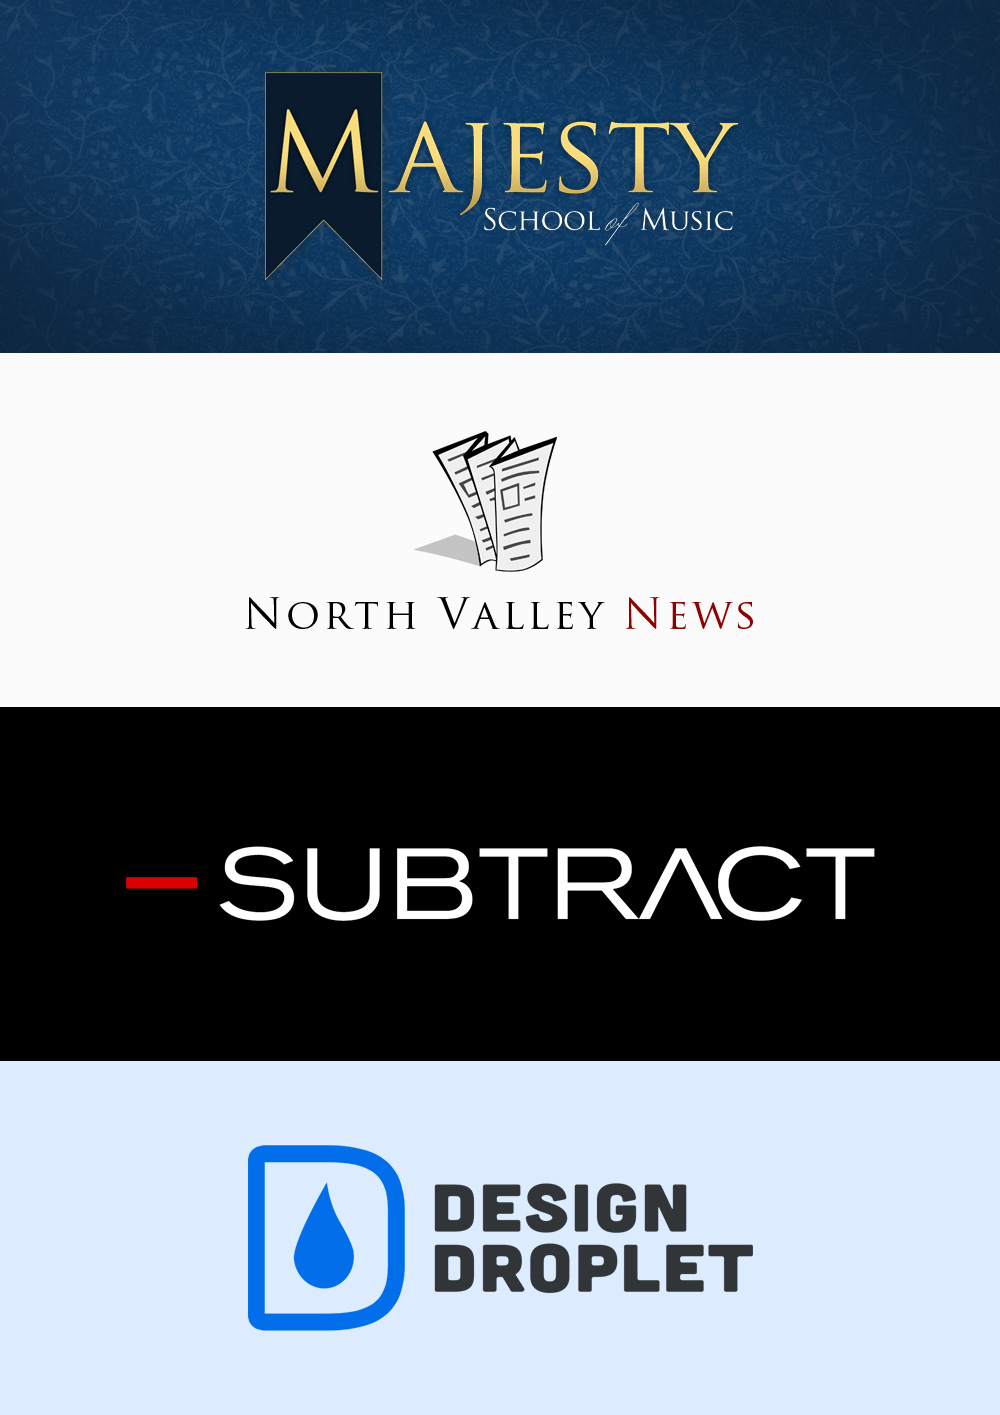 Logos Designed by Jad